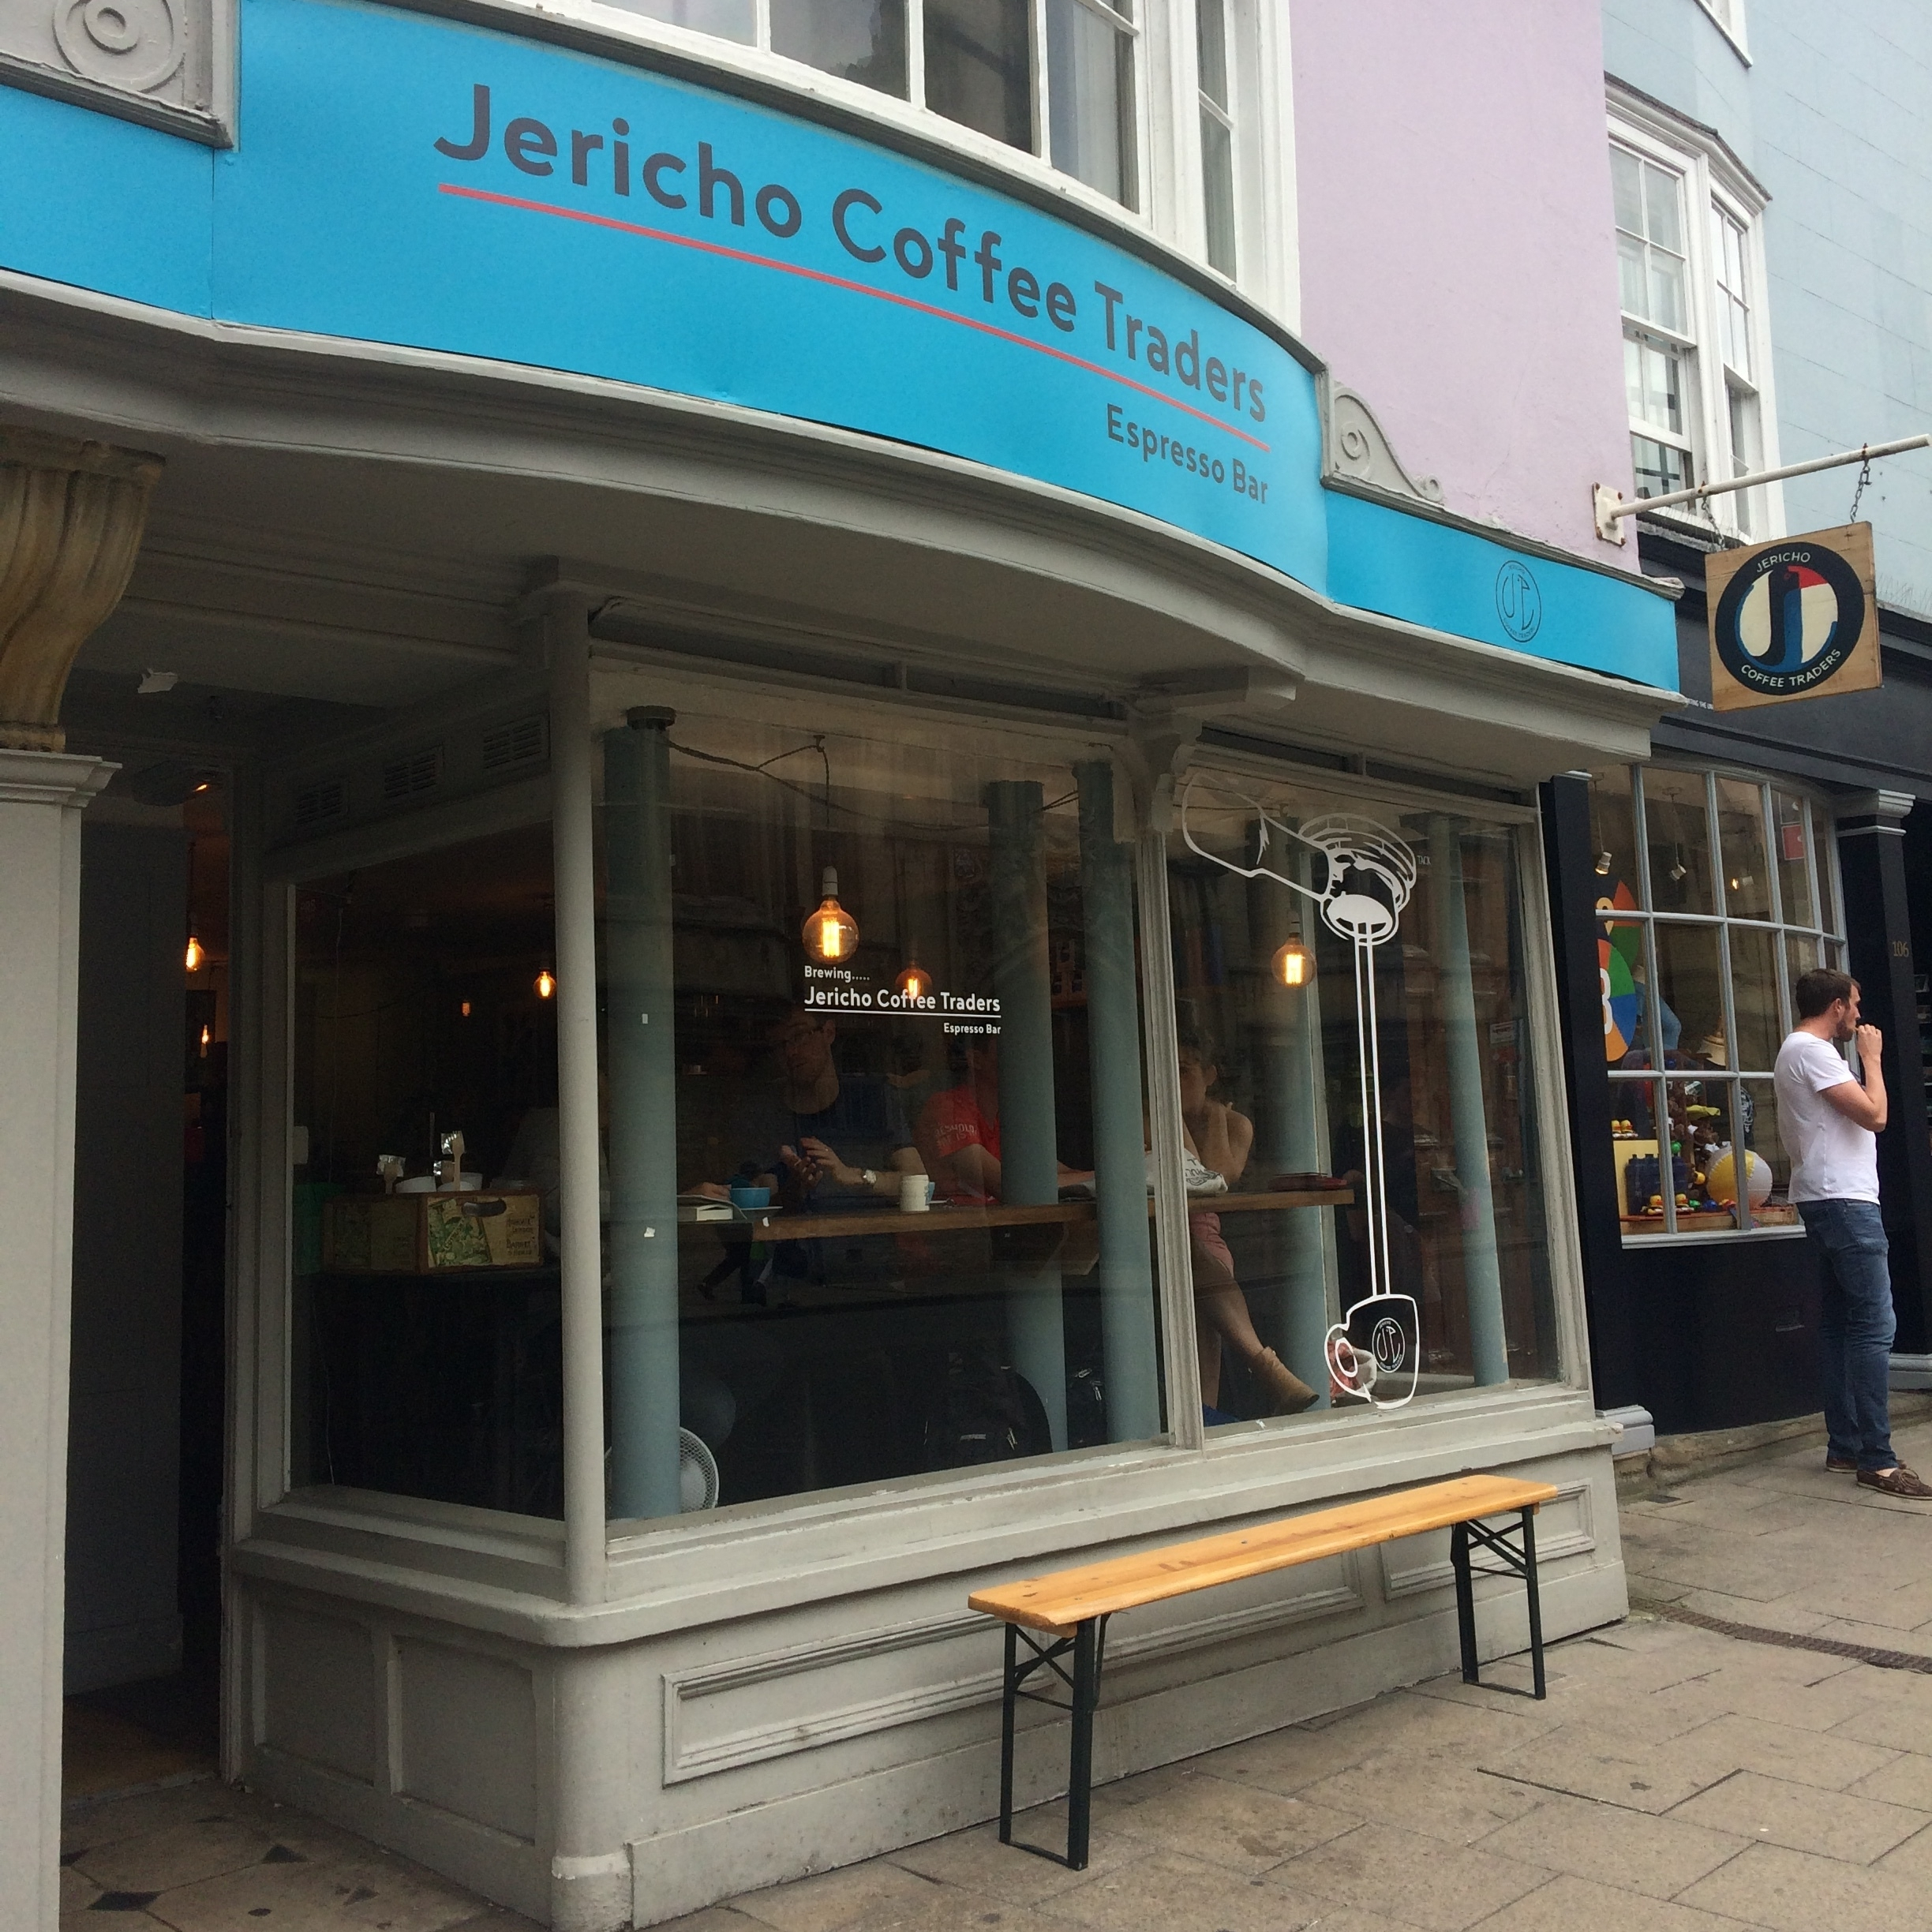 Jericho Coffee Traders - One of the wonders of Jericho. Delicious coffee and you can now refill your water bottle here too. Not only that, they even have their own reusable water bottles!105 High St, OX1 4BWwww.jerichocoffeetraders.com